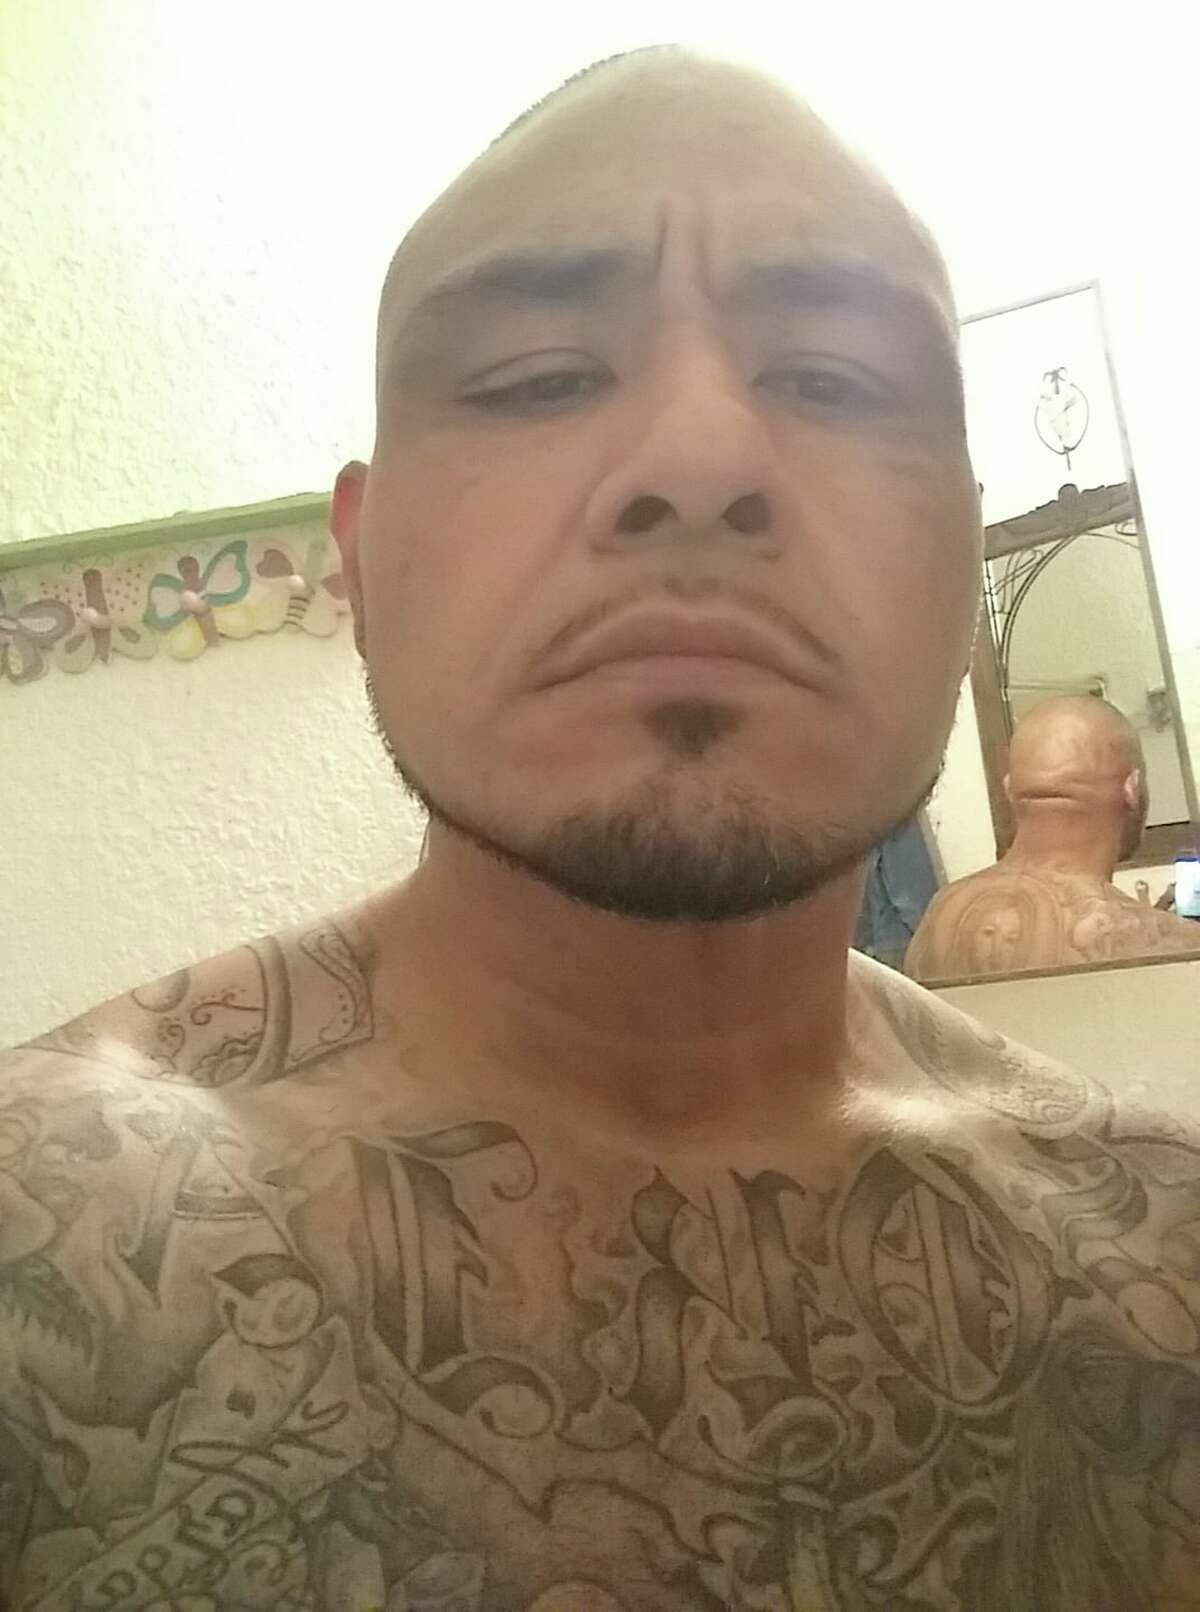 Johnny Soria Date of Crime: 11/01/2018 Charge: Continual Sexual Abuse - Child